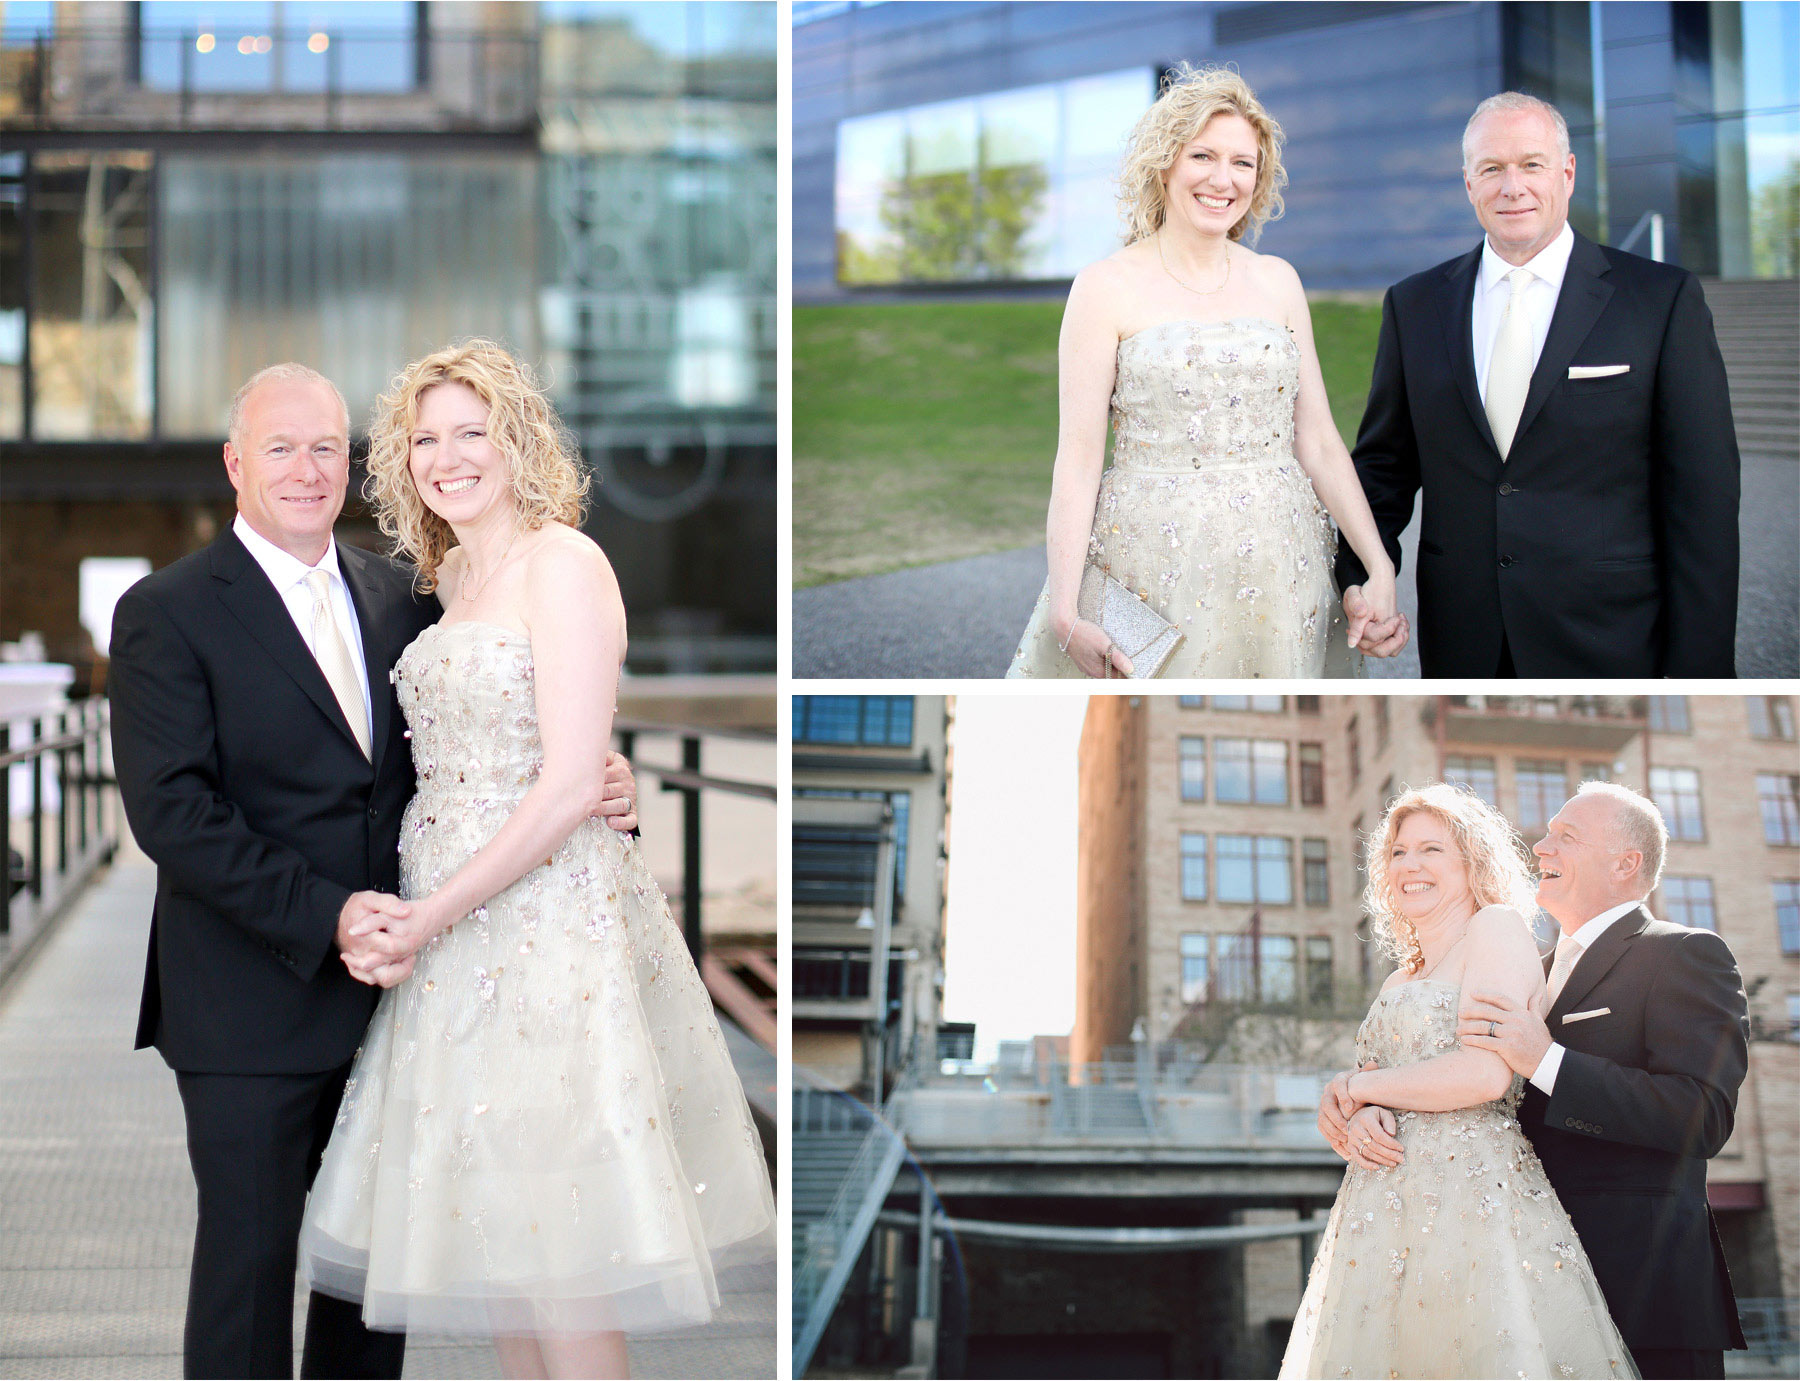 10-Minneapolis-Minnesota-Wedding-Photographer-by-Andrew-Vick-Photography-Spring-Guthrie-Theater-Mill-City-Museum-Downtown-Bride-Groom-Embrace-Laughter-Vintage-Dannette-and-Darren.jpg